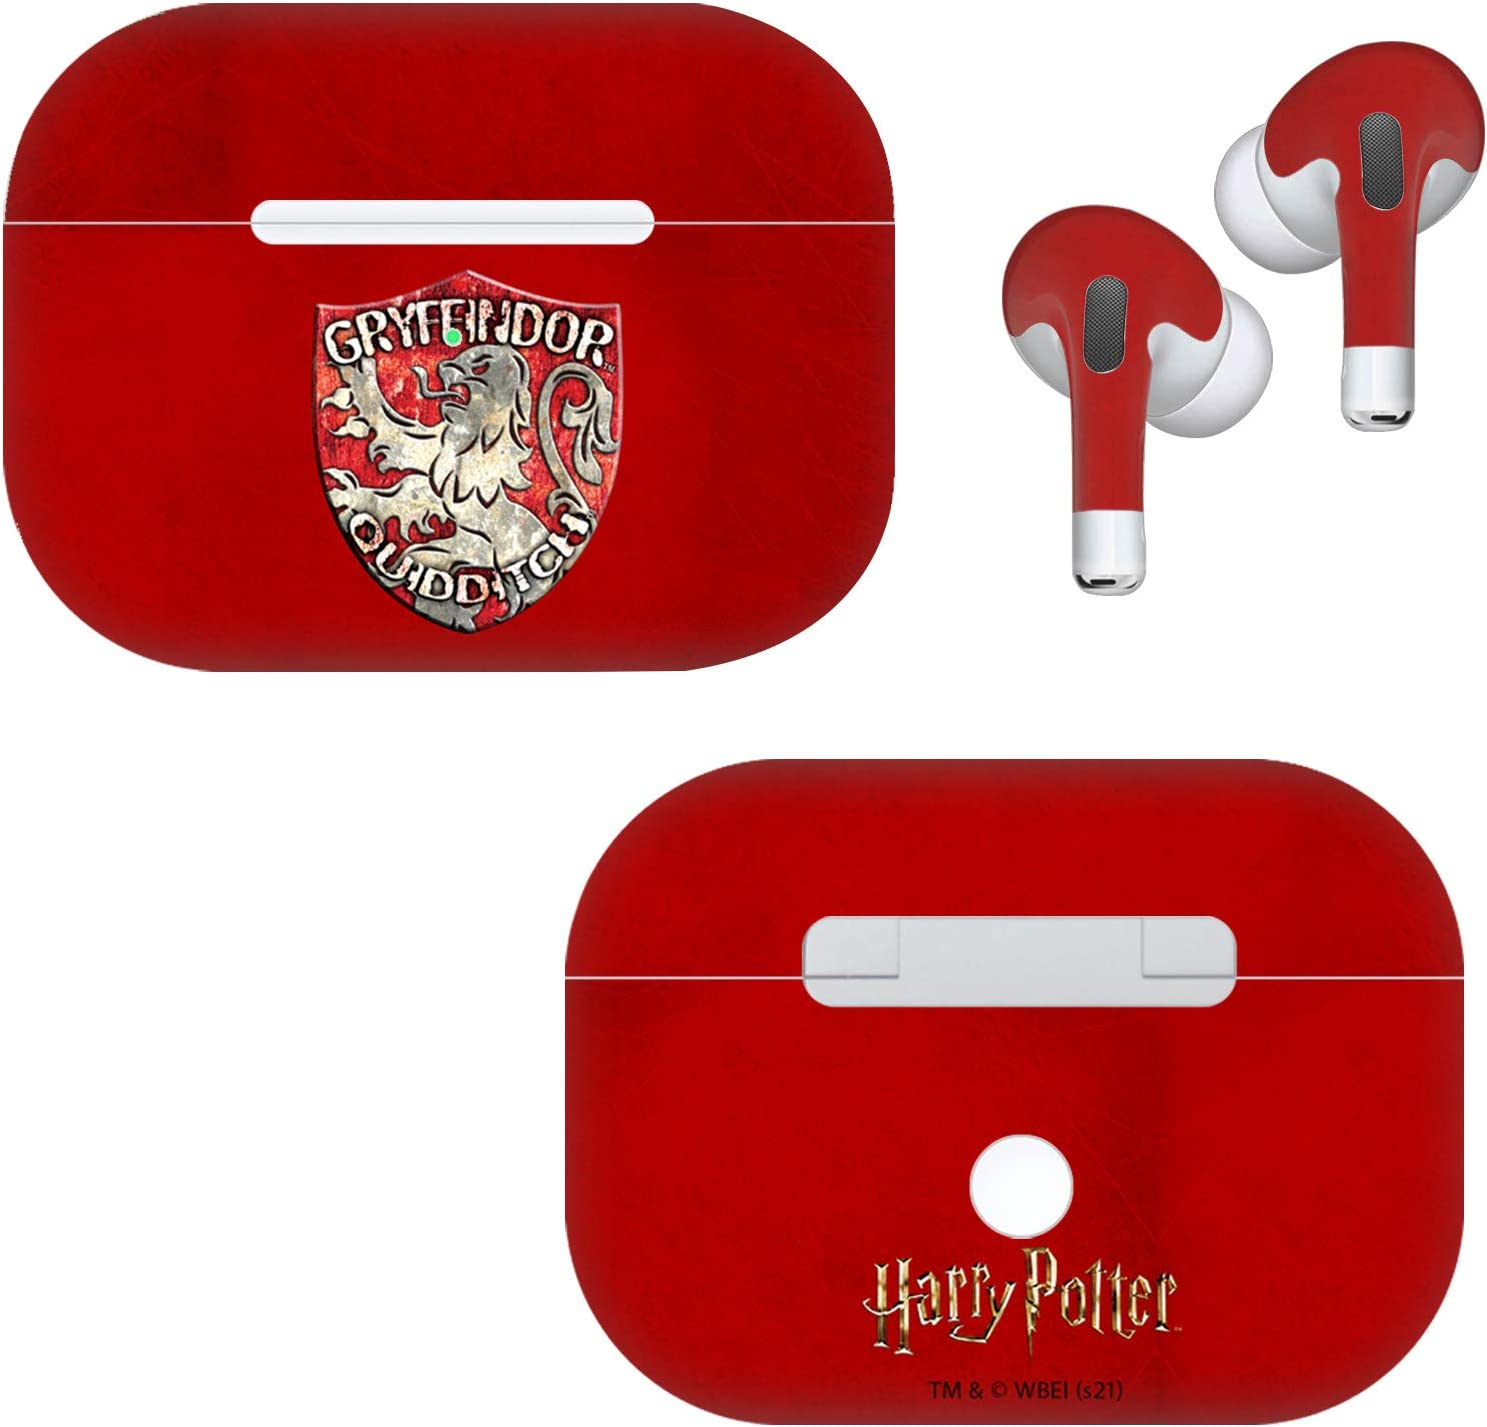 Head Case Designs Officially Licensed Harry Potter Gryffindor Quidditch Badge Prisoner of Azkaban V Vinyl Sticker Skin Decal Cover Compatible with AirPods Pro